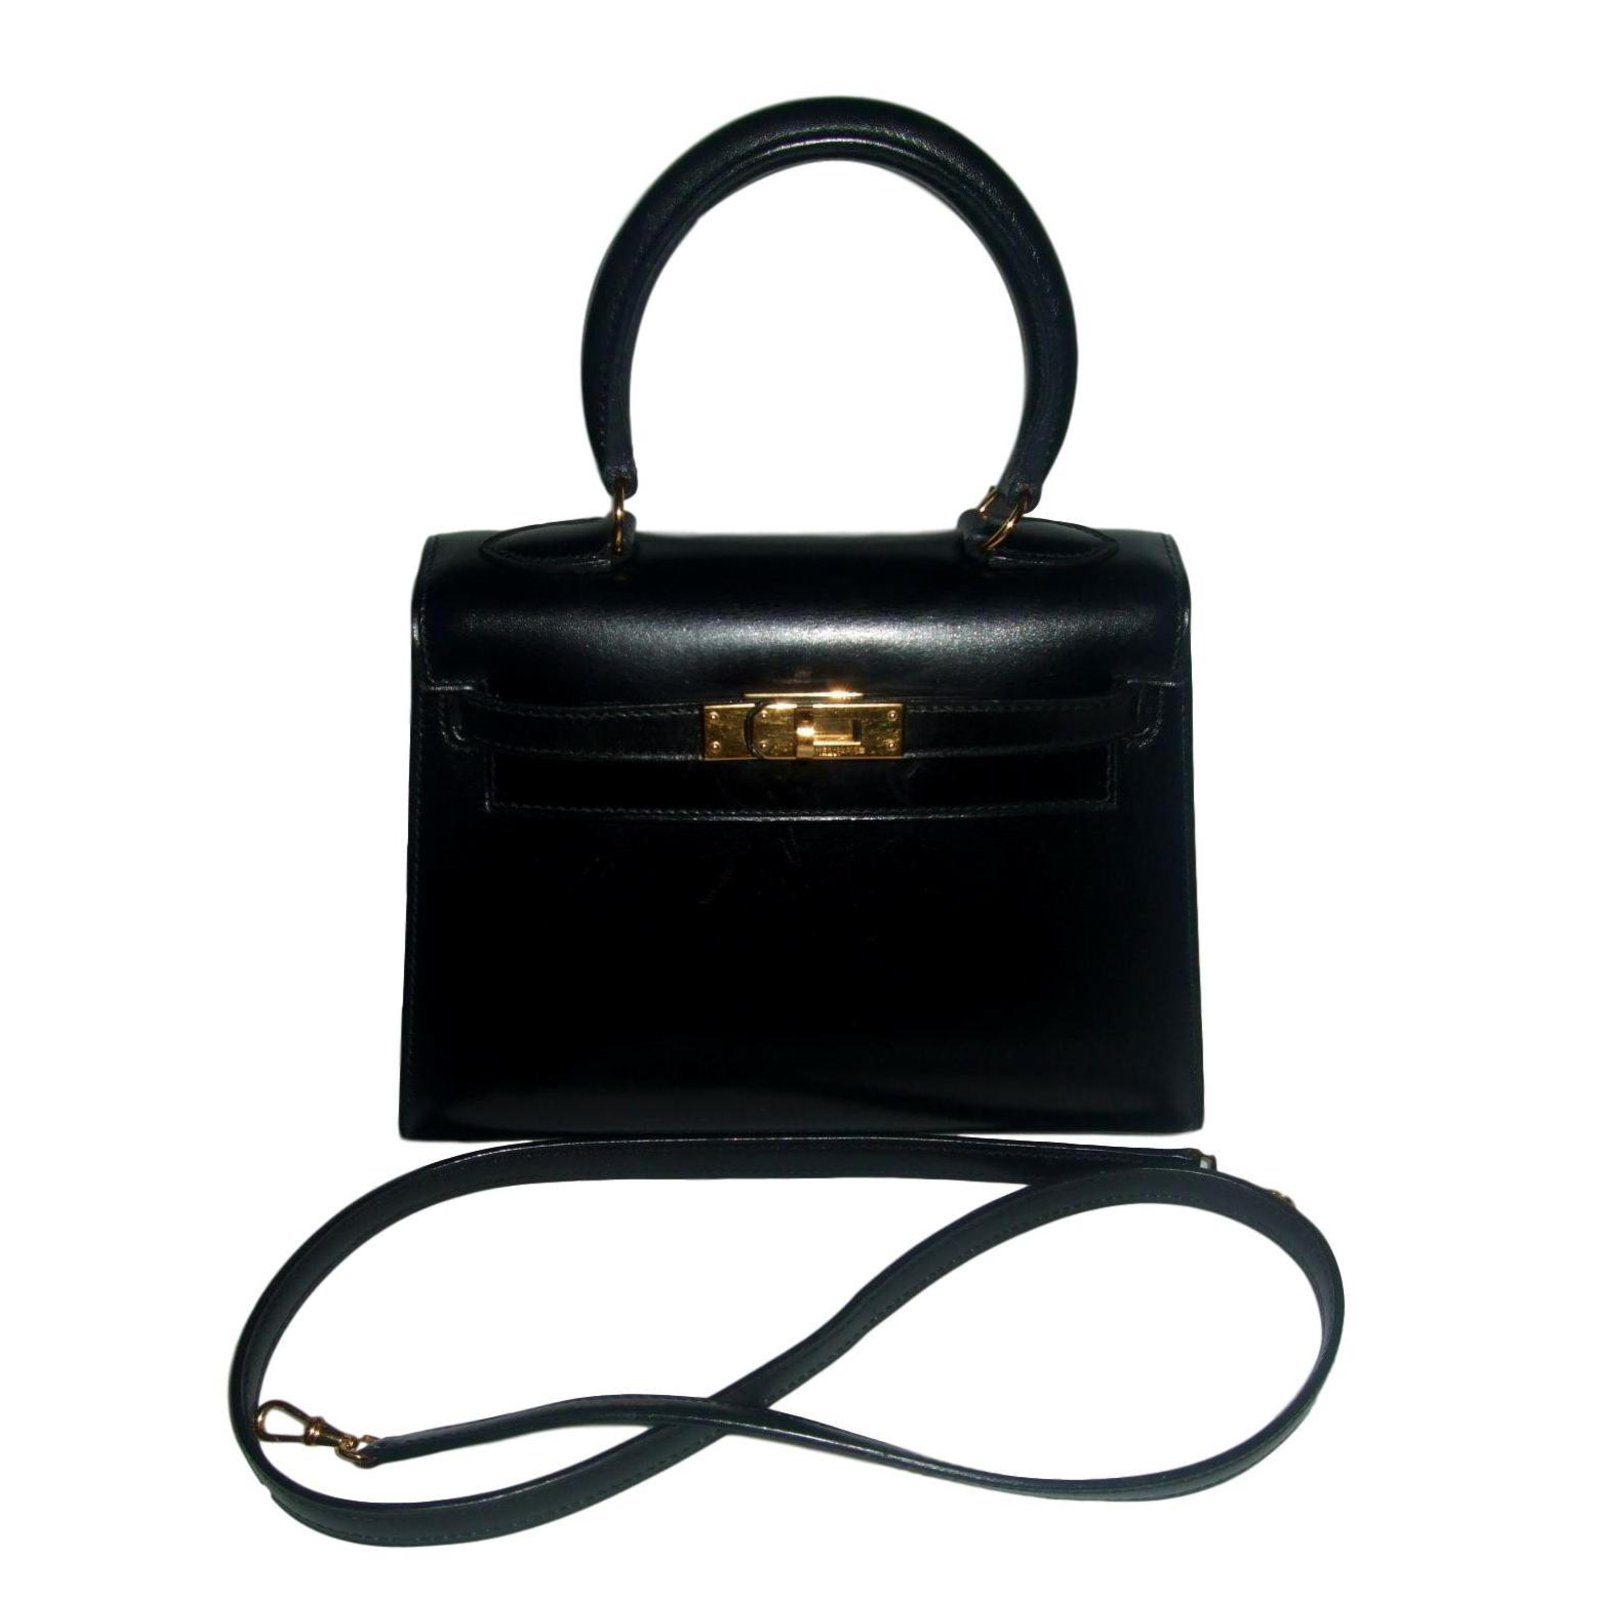 Facebook · Pin This. Hermès MINI KELLY SELLIER Handbags Leather Black ref. 95072 8f2079aca2f68